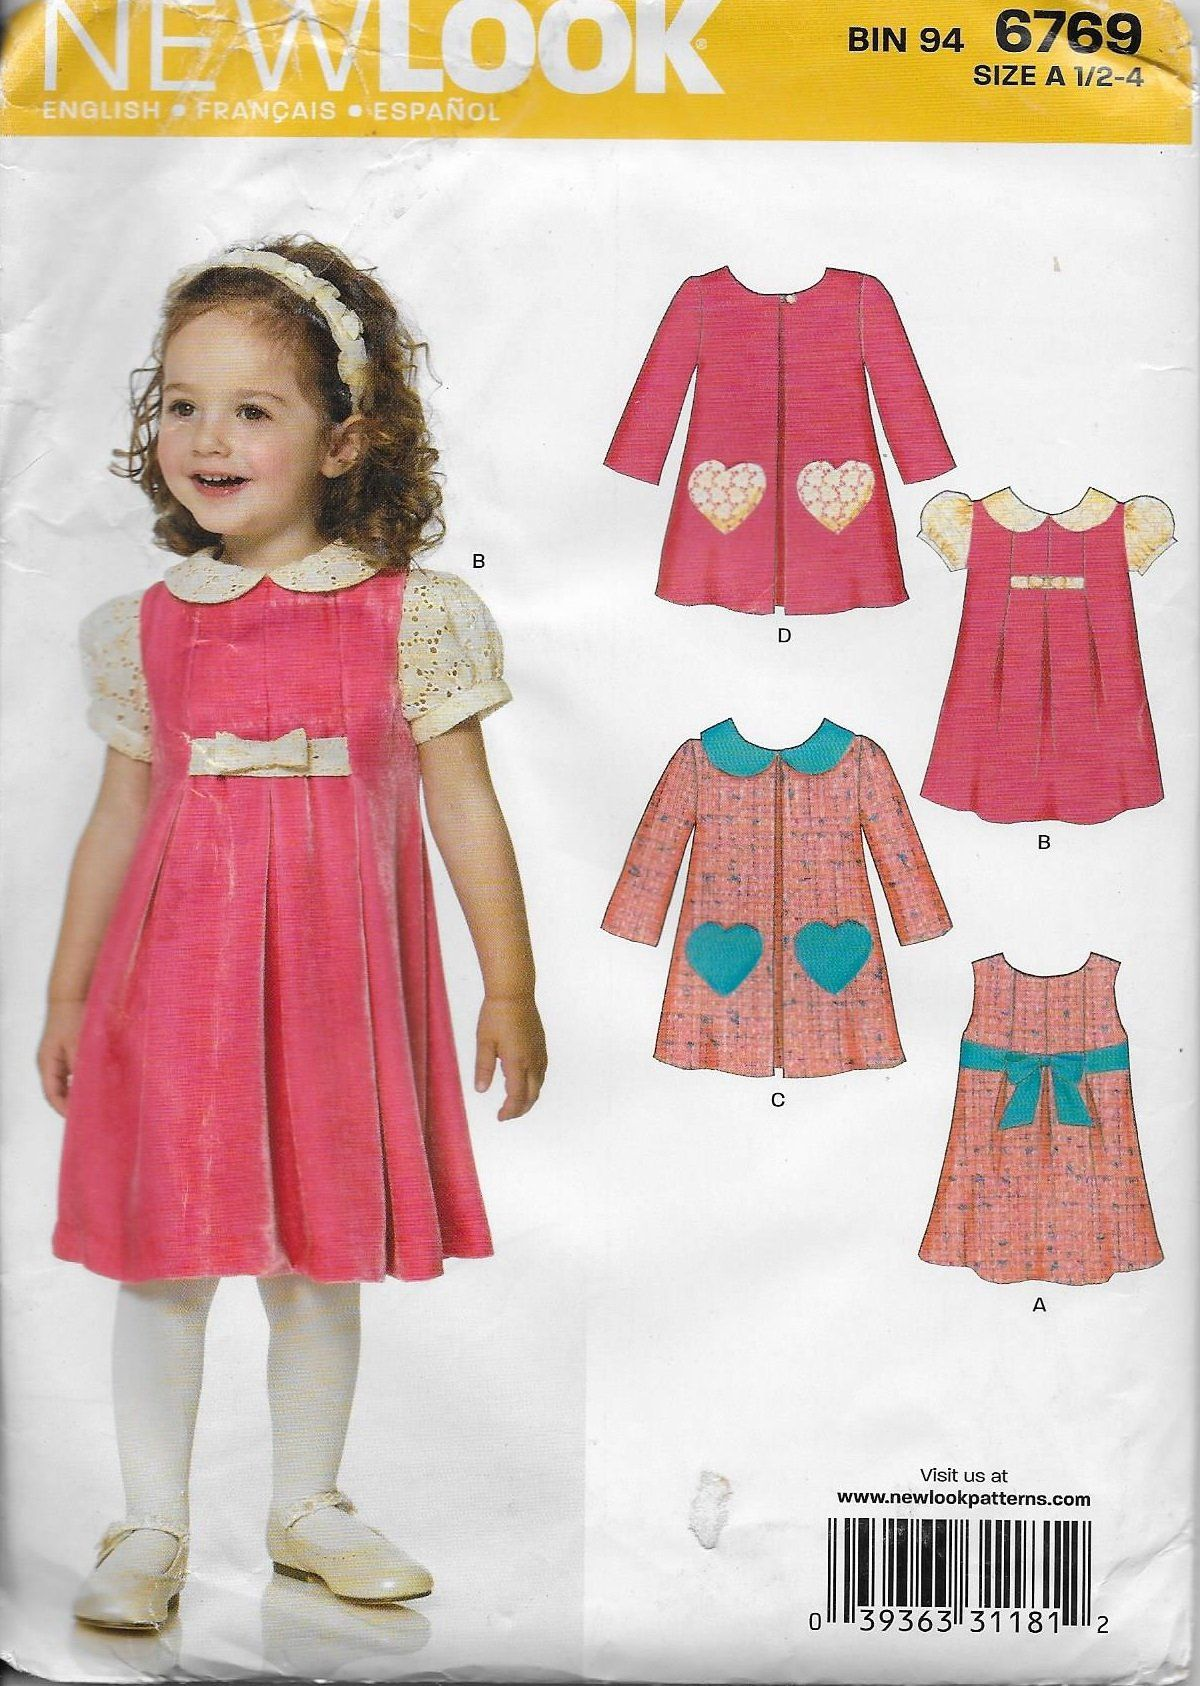 New look toddlersu dress and jumper sewing pattern size